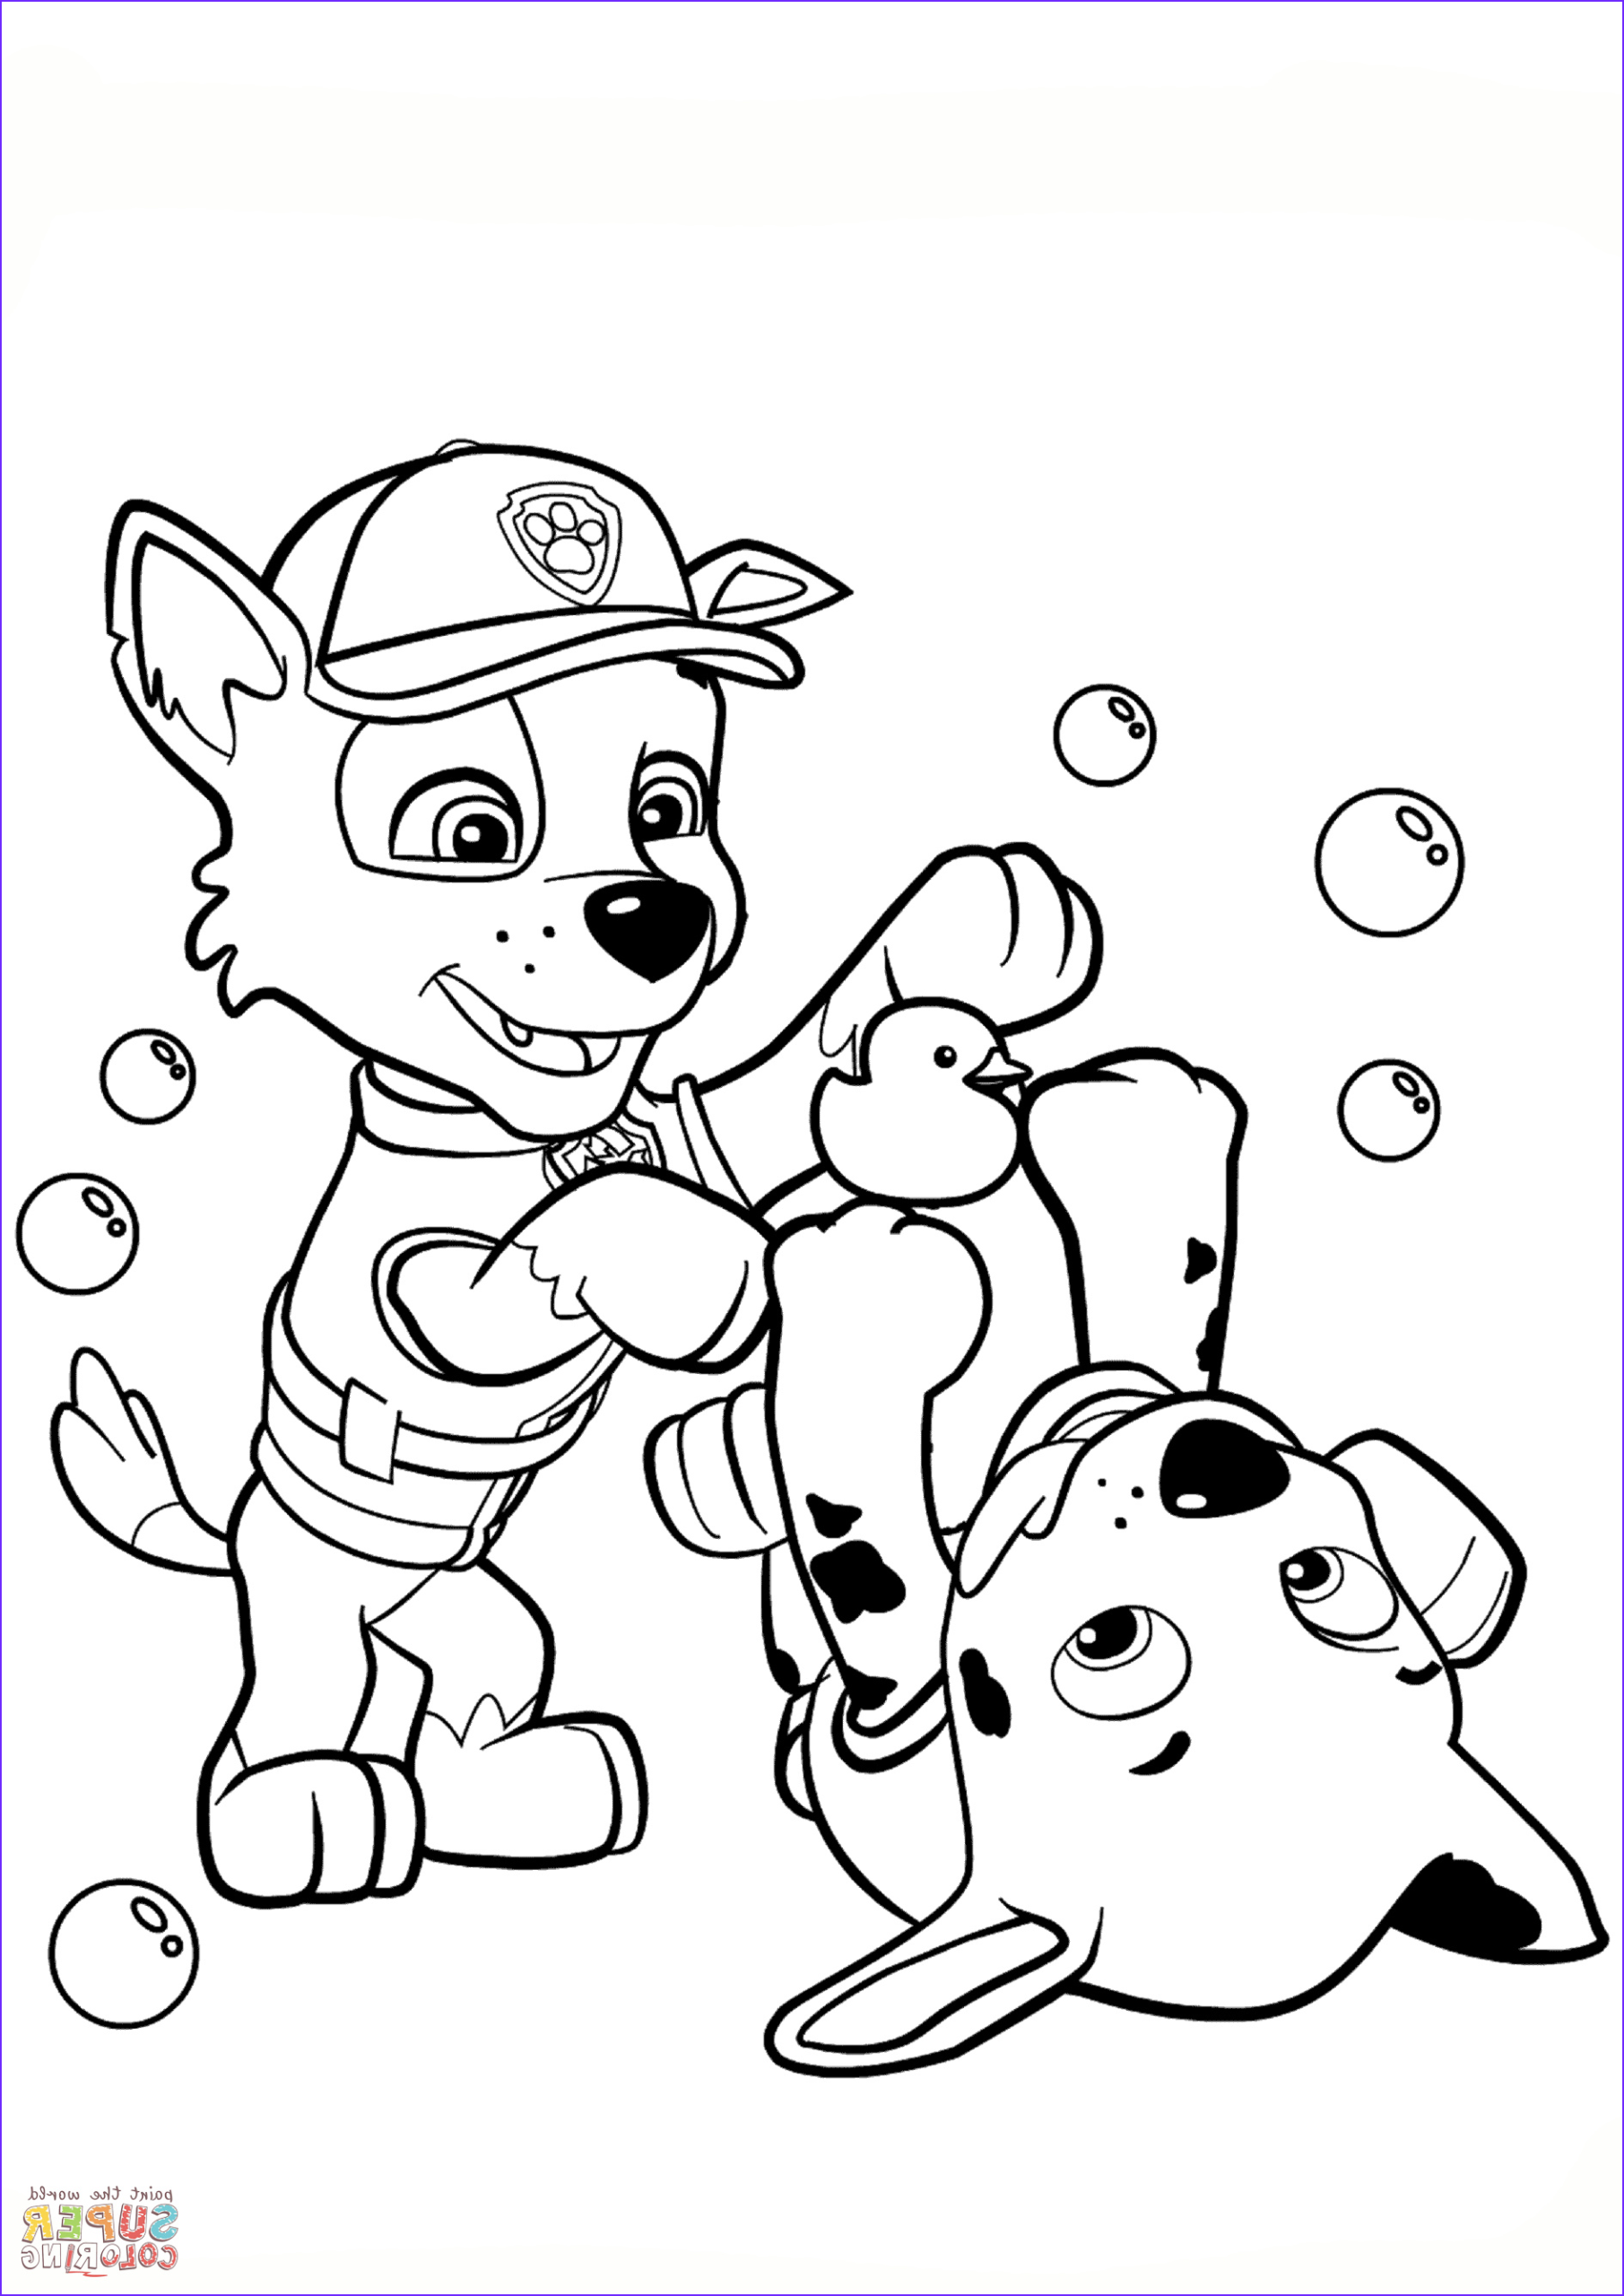 Paw Patrol Coloring Books Luxury Image Paw Patrol Rocky and Marshall Coloring Page